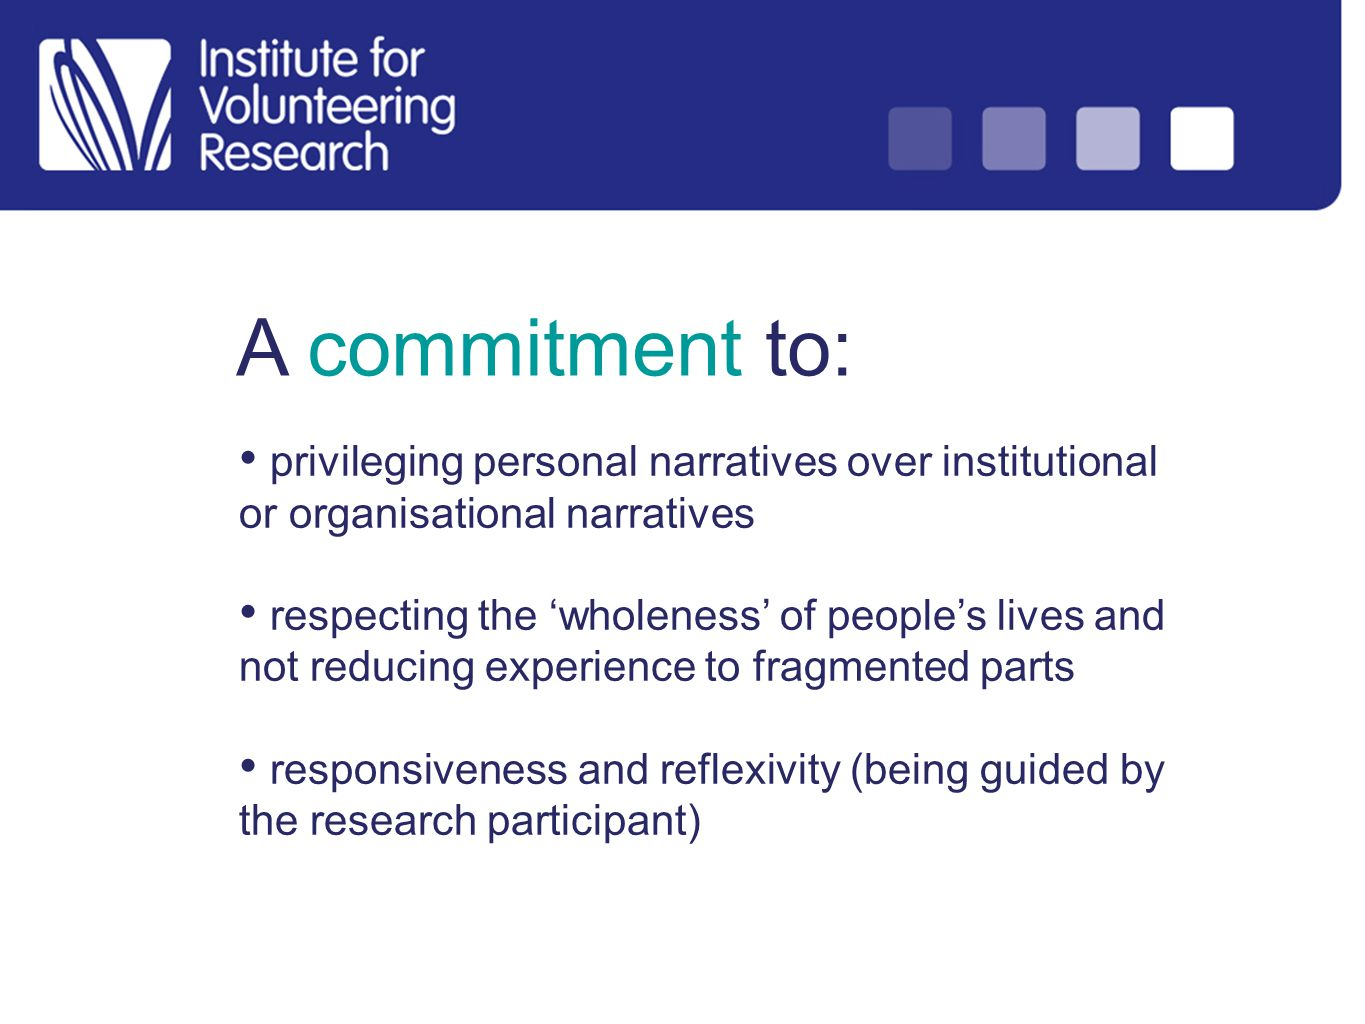 A commitment to: privileging personal narratives over institutional or organisational narratives respecting the wholeness of peoples lives and not reducing experience to fragmented parts responsiveness and reflexivity (being guided by the research participant)